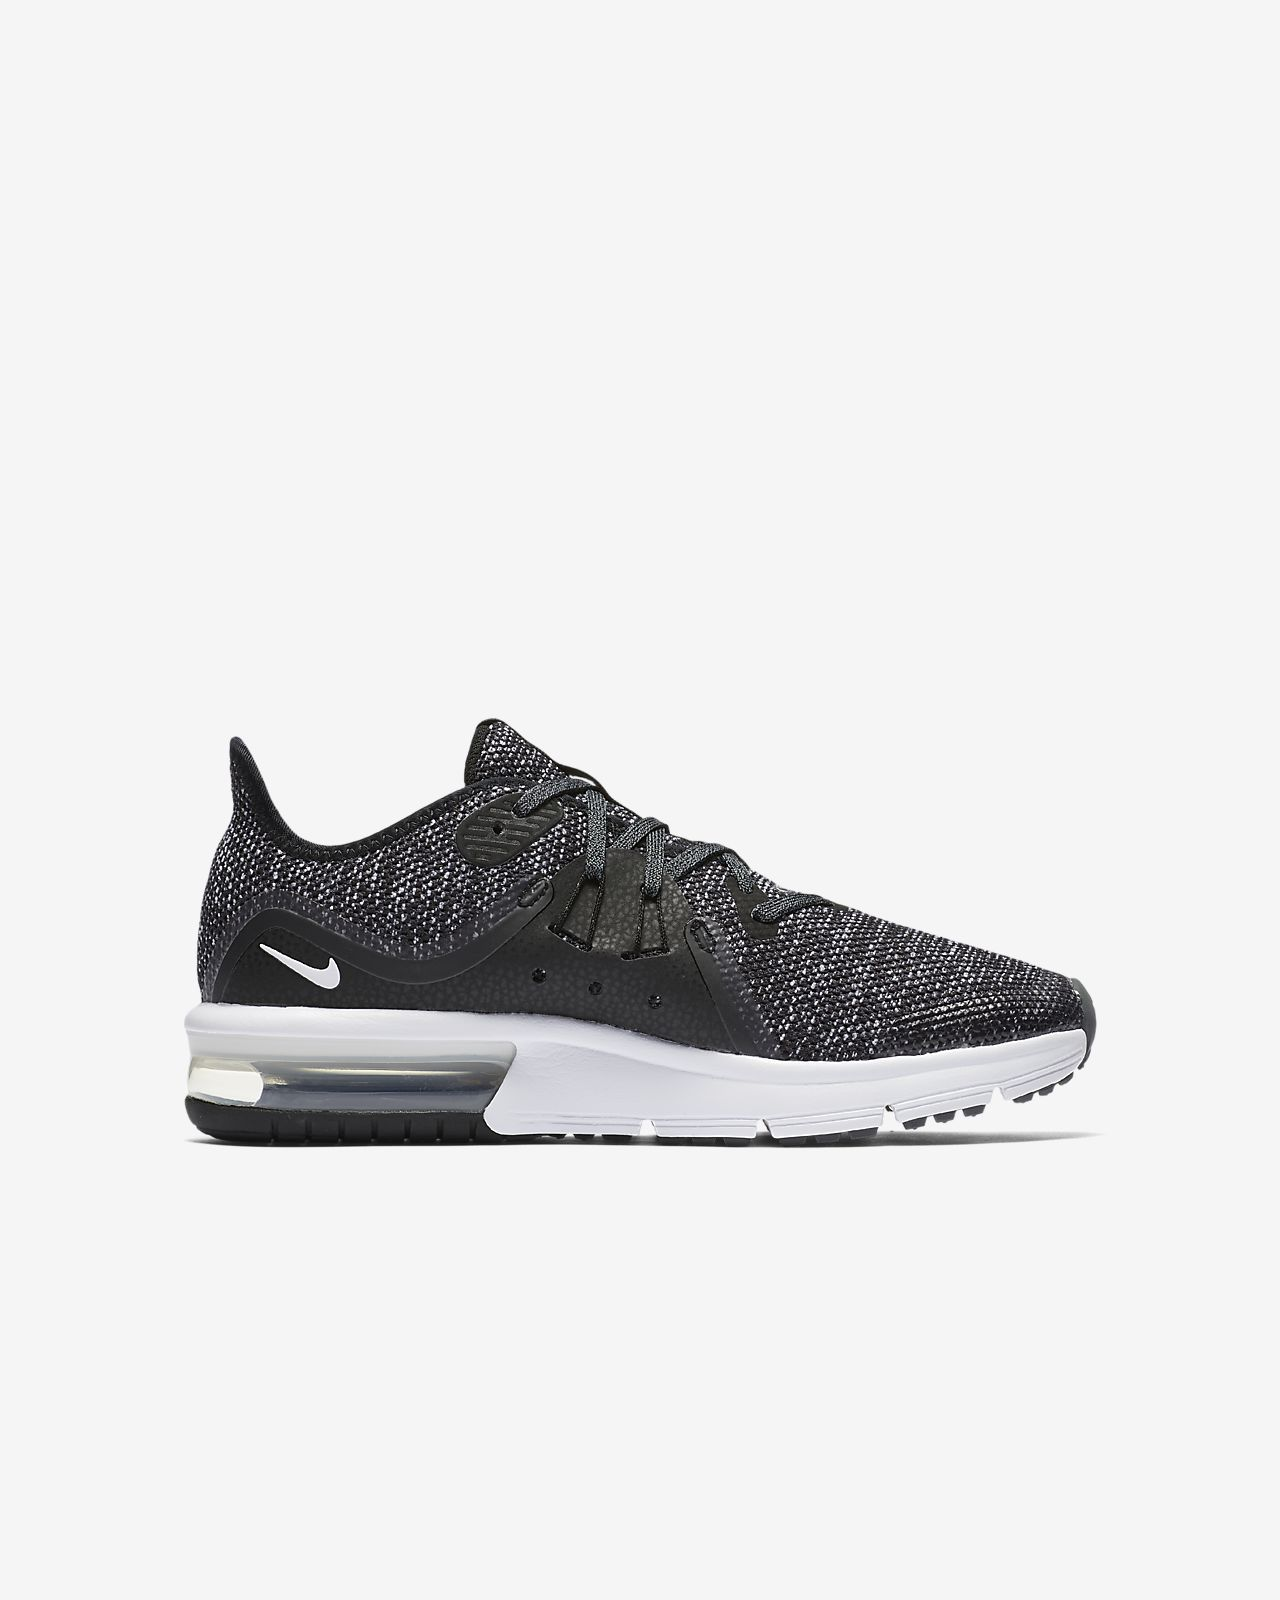 check out a10ee 5f5e1 ... Scarpa Nike Air Max Sequent 3 - Ragazzi